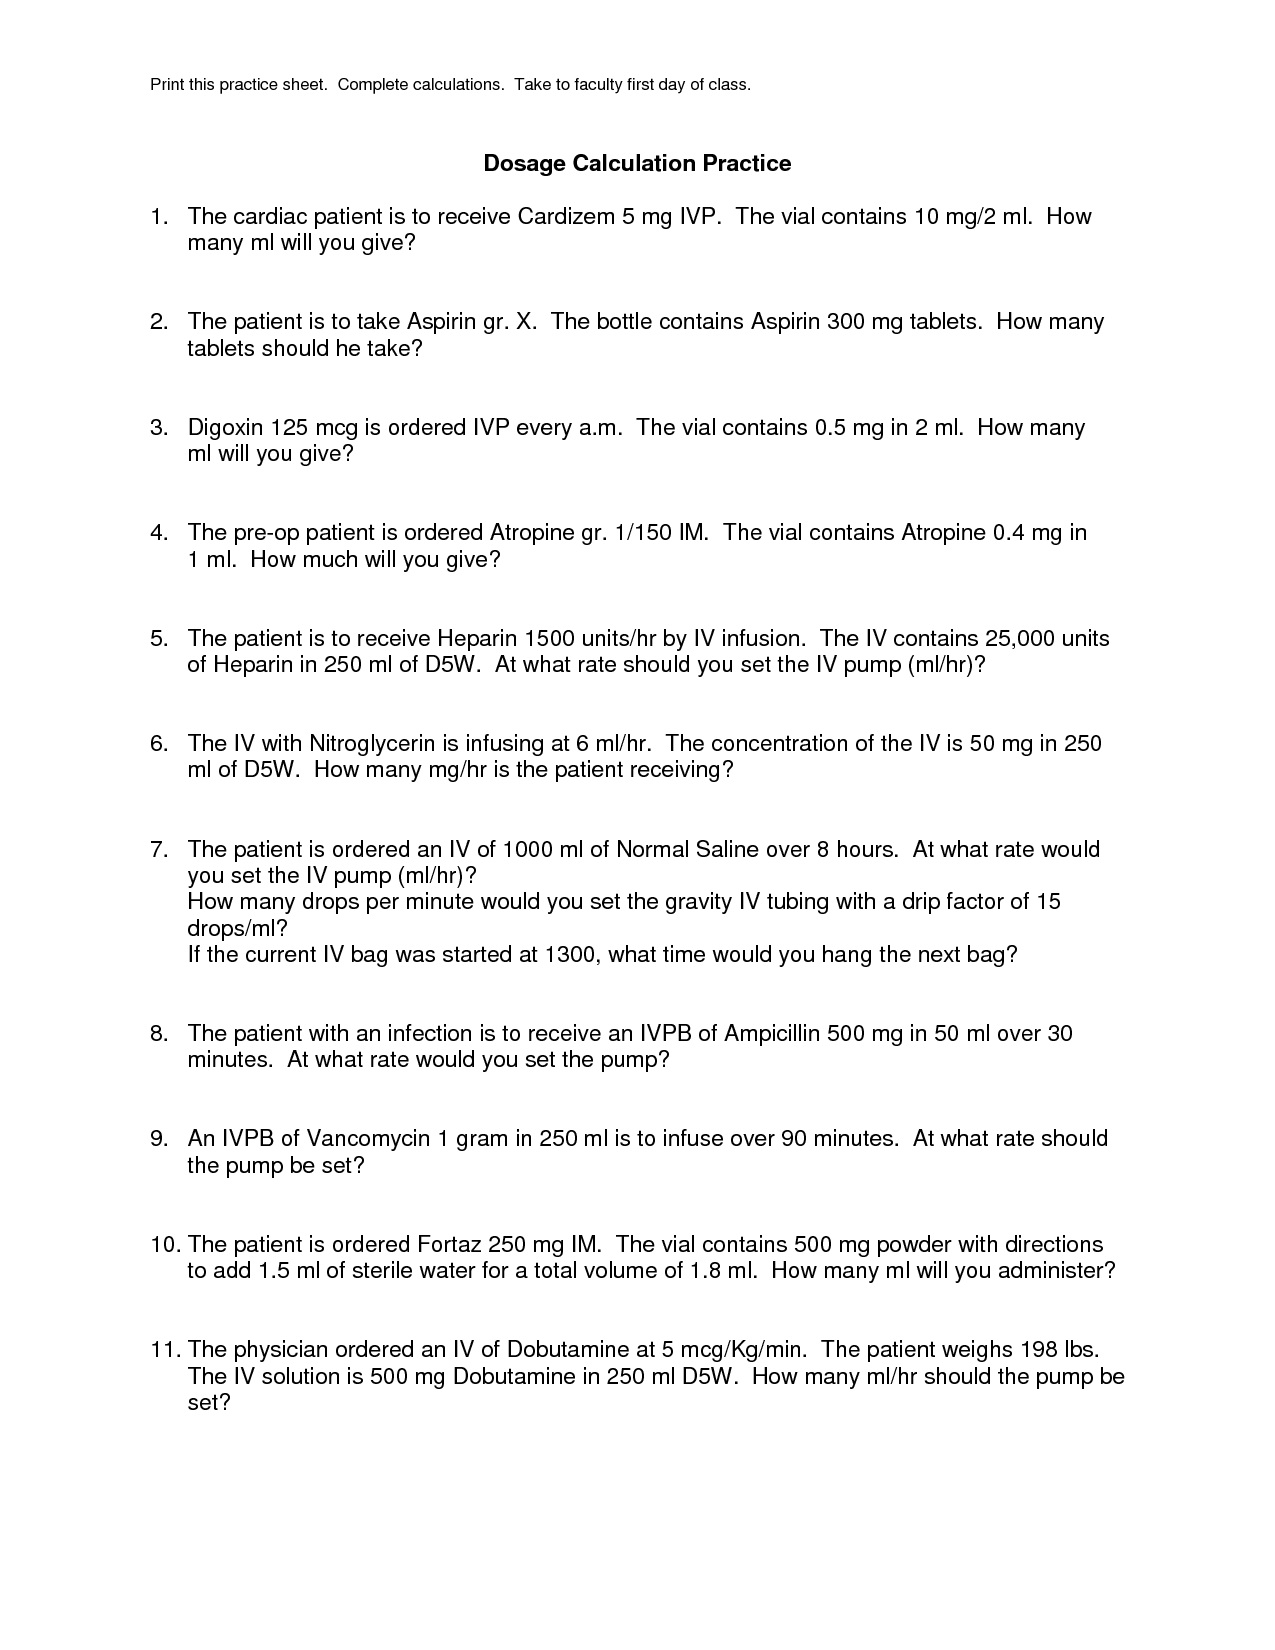 Math Dosage Calculation Worksheet Printable Math Best